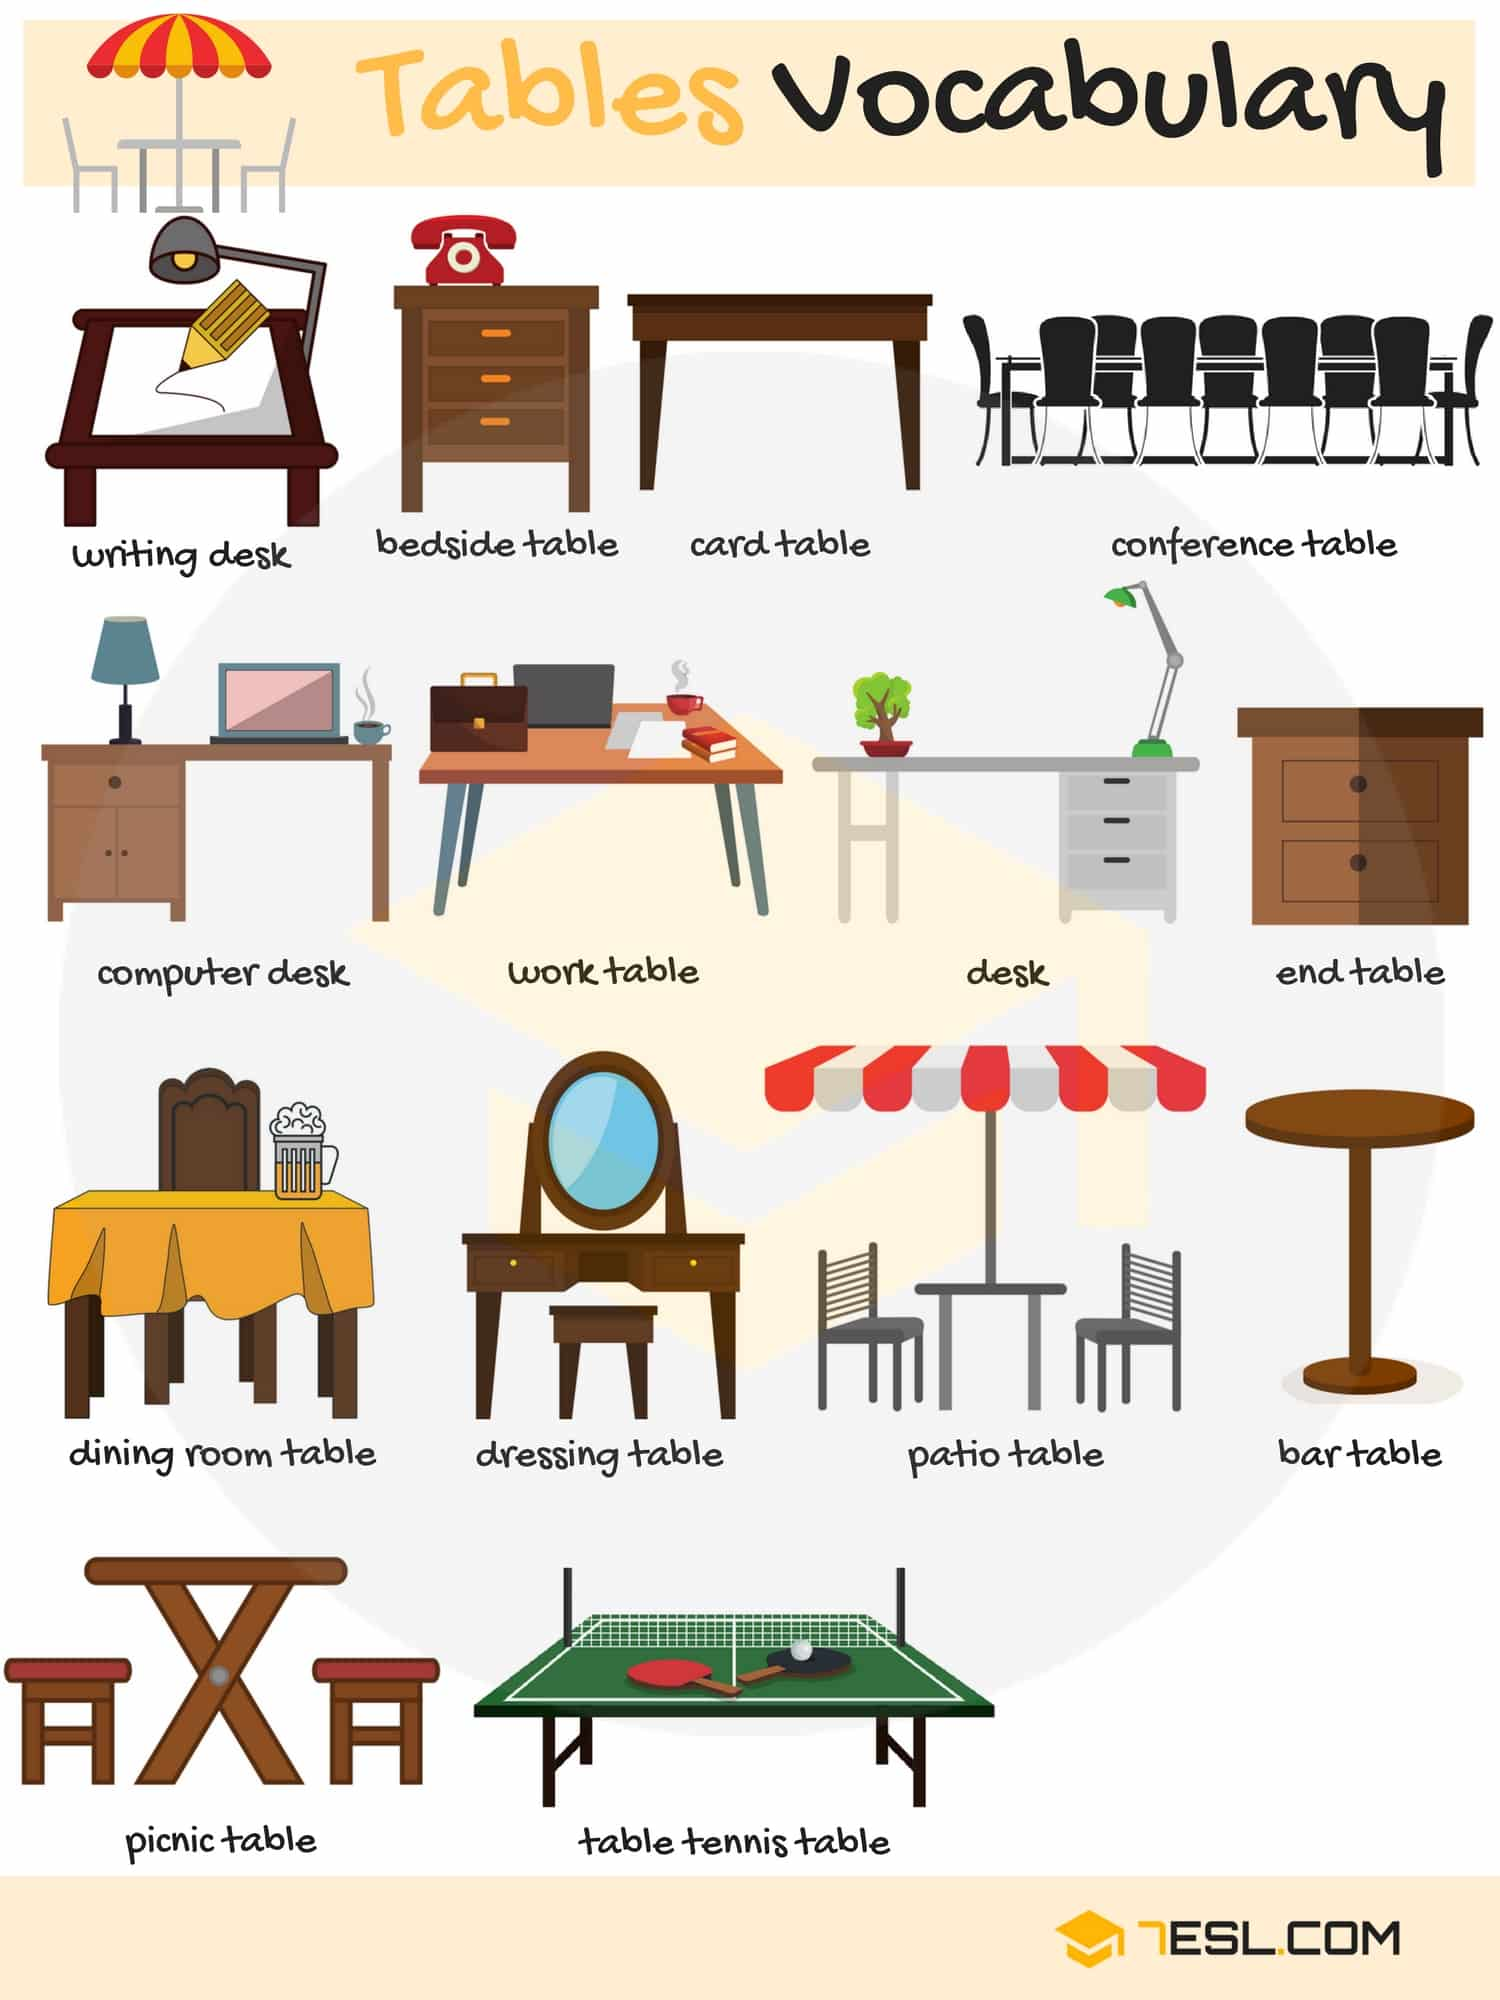 Types of Tables: